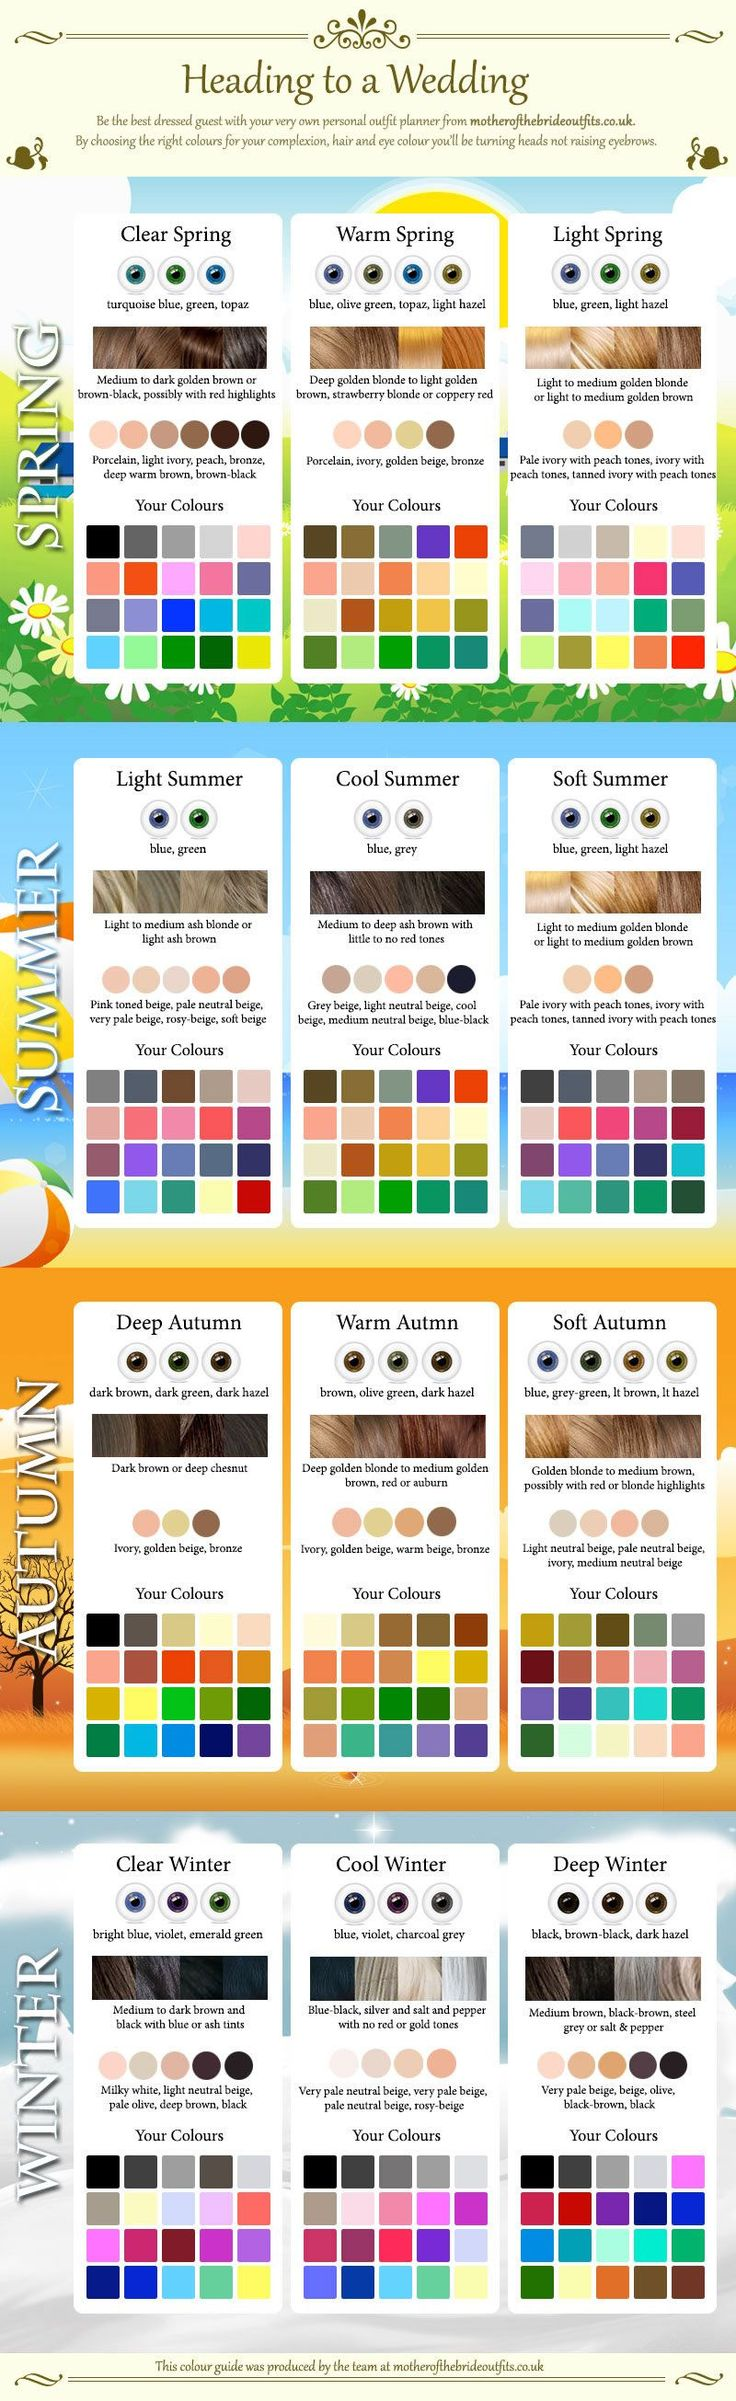 INFOGRAPHIC: HEADING TO A WEDDING? Spring, Summer, Autumn, & Winter Color Analysis (I'm a deep winter)